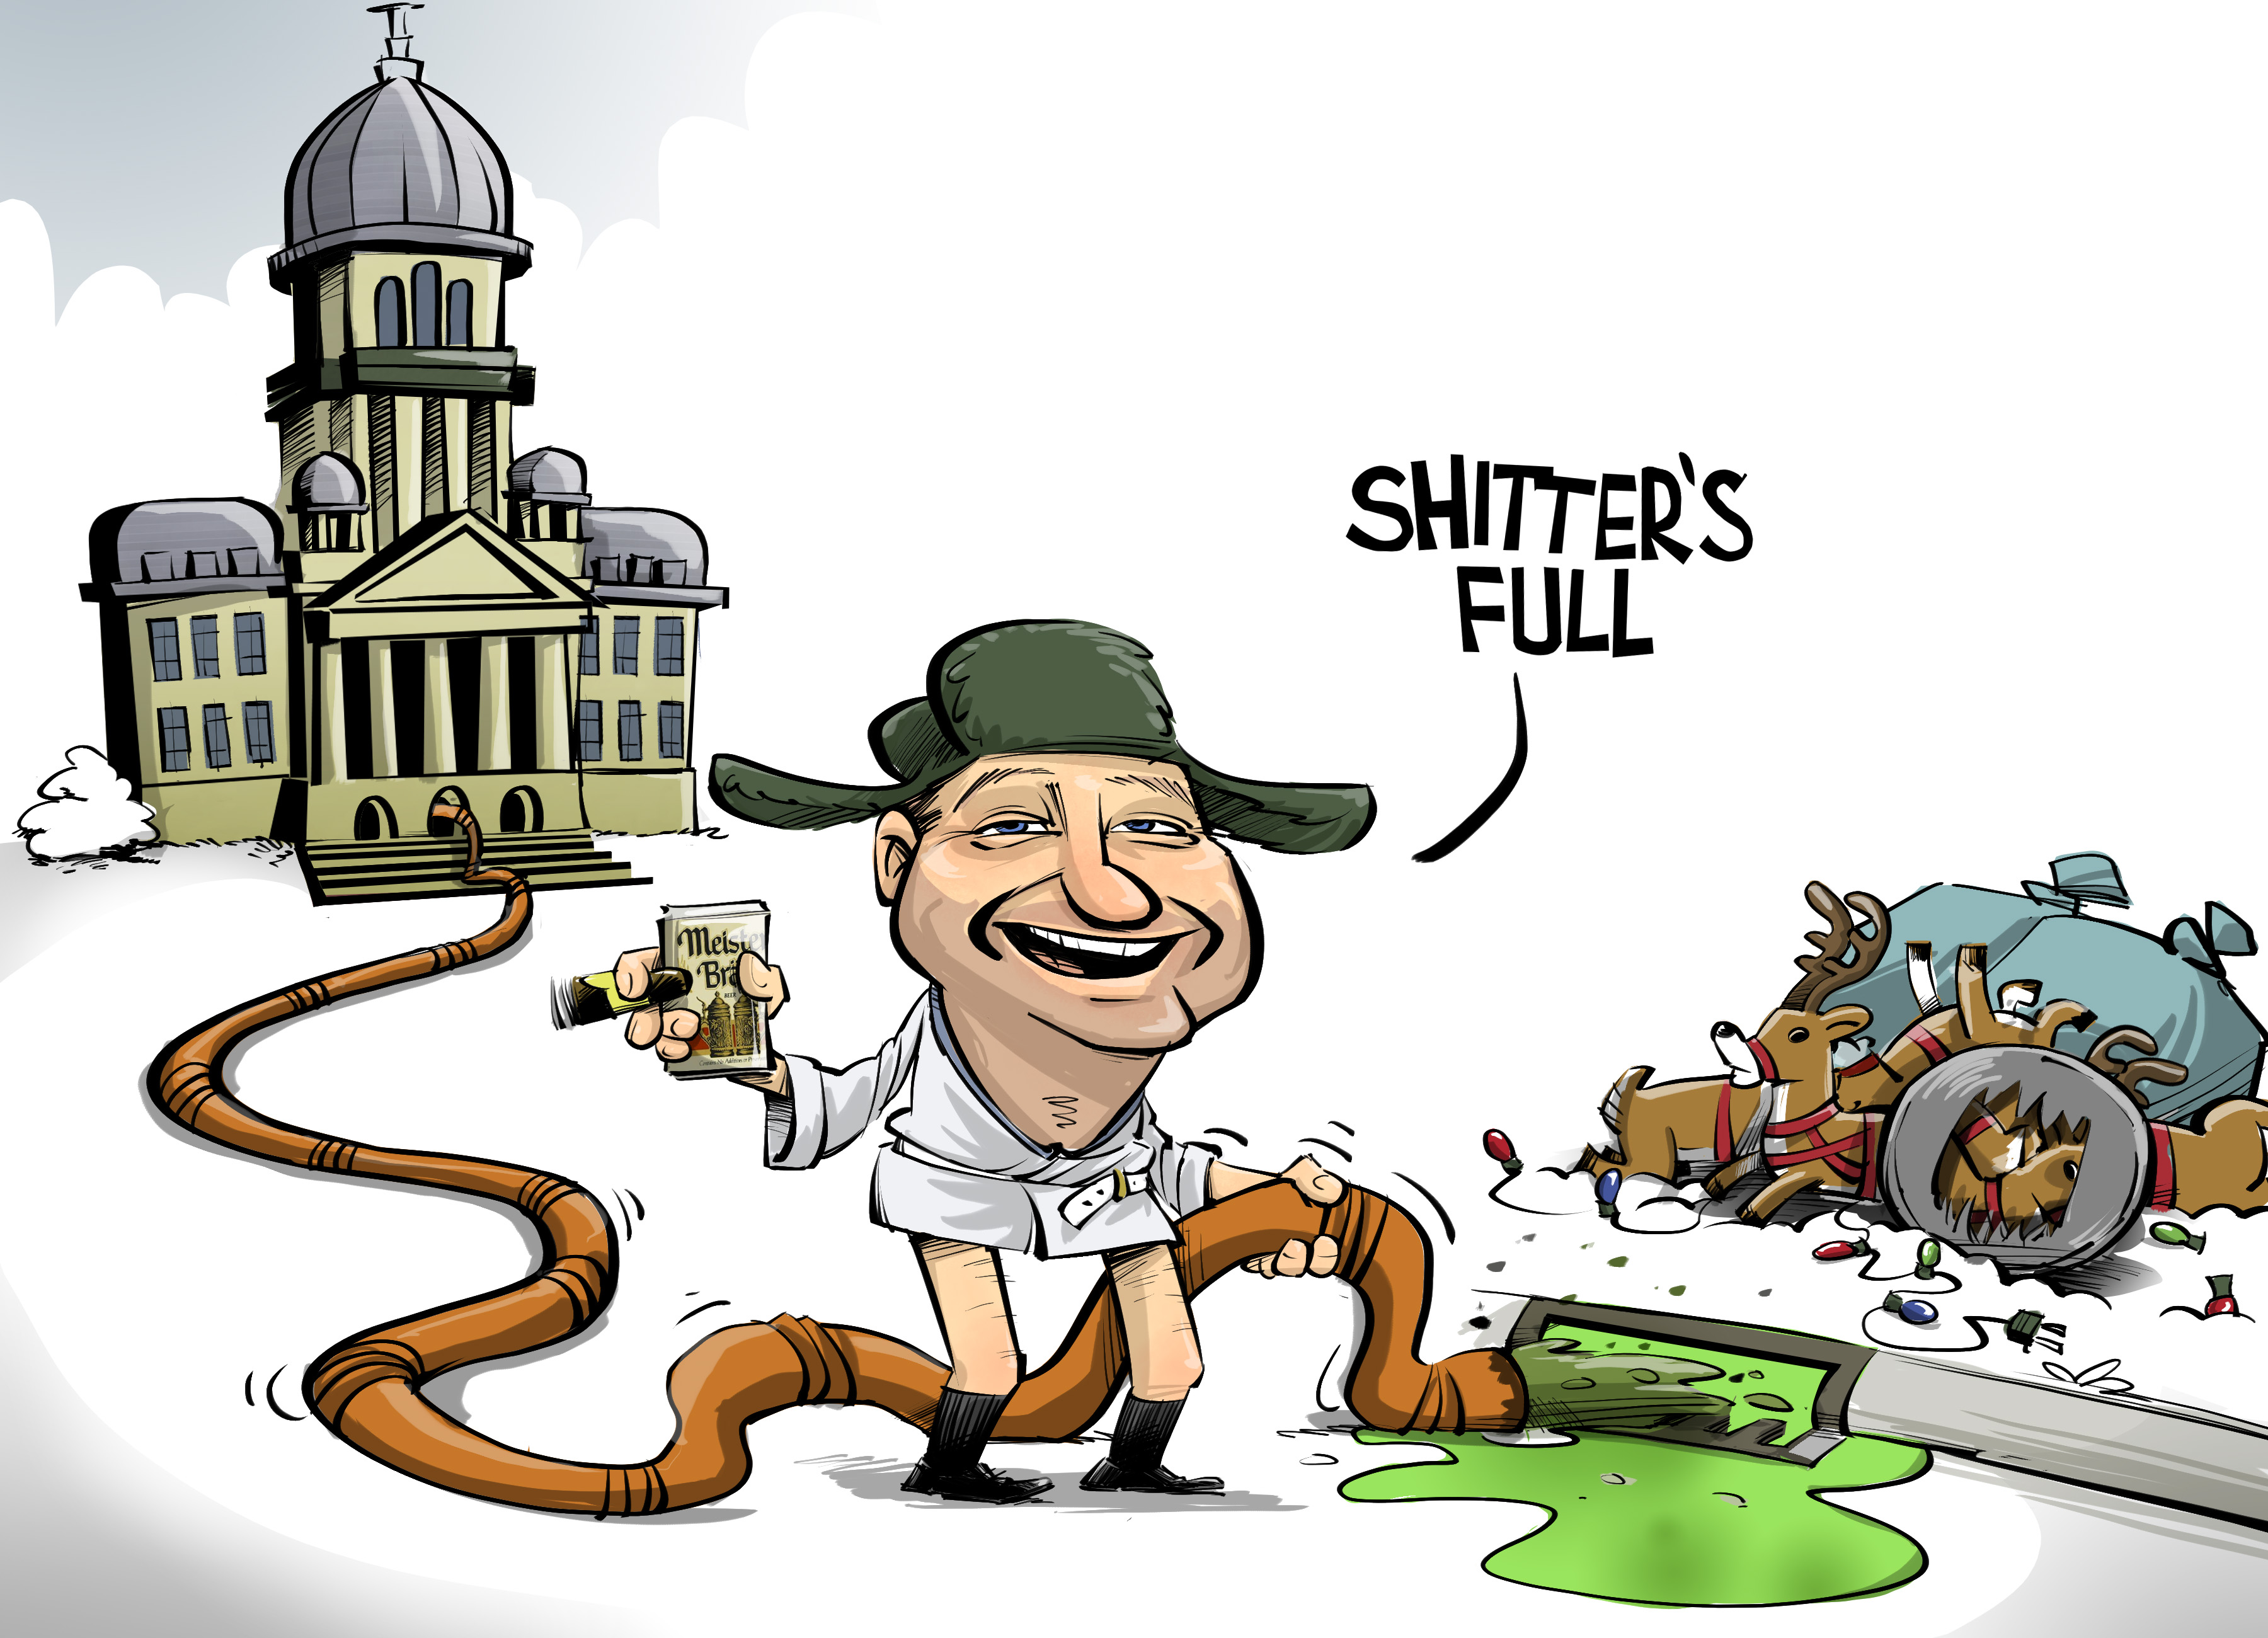 Christmas Vacation Shitter's Full Illinois Politics